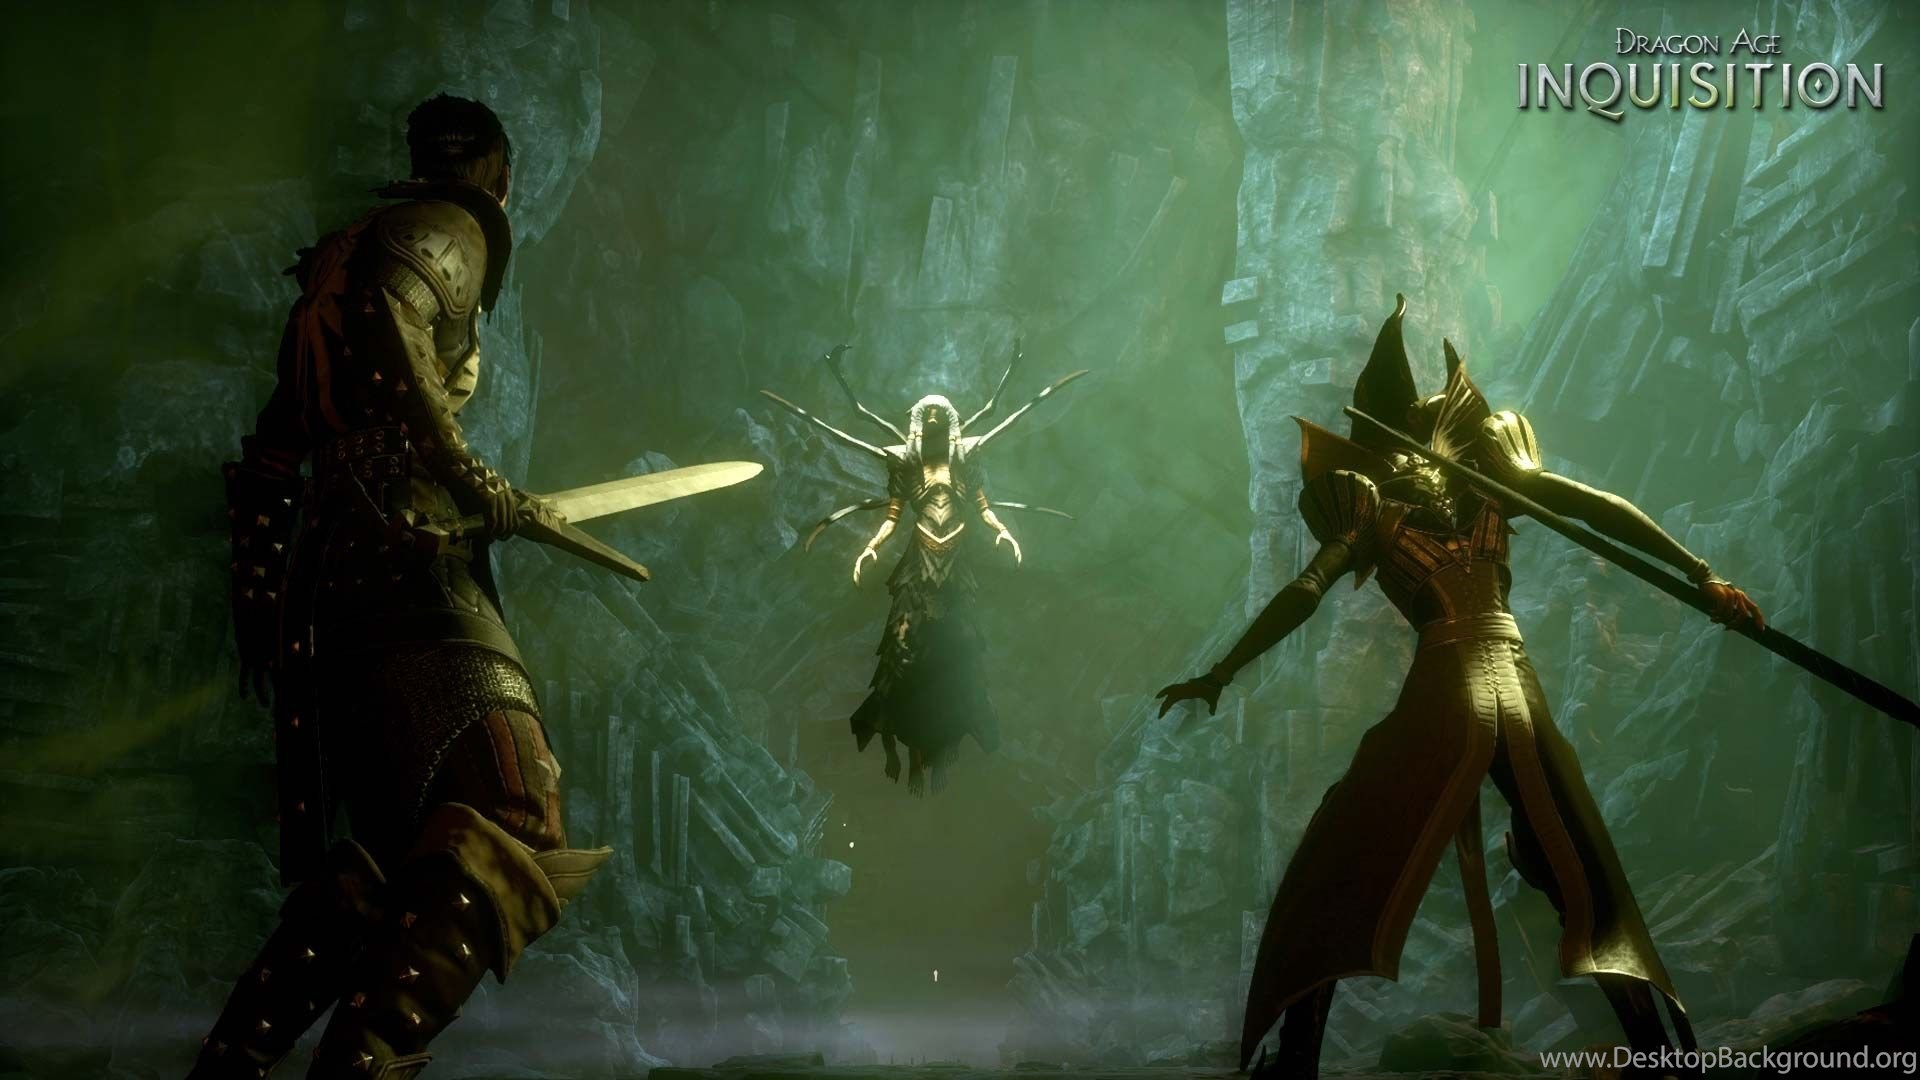 187 Dragon Age Inquisition Hd Wallpapers Desktop Background